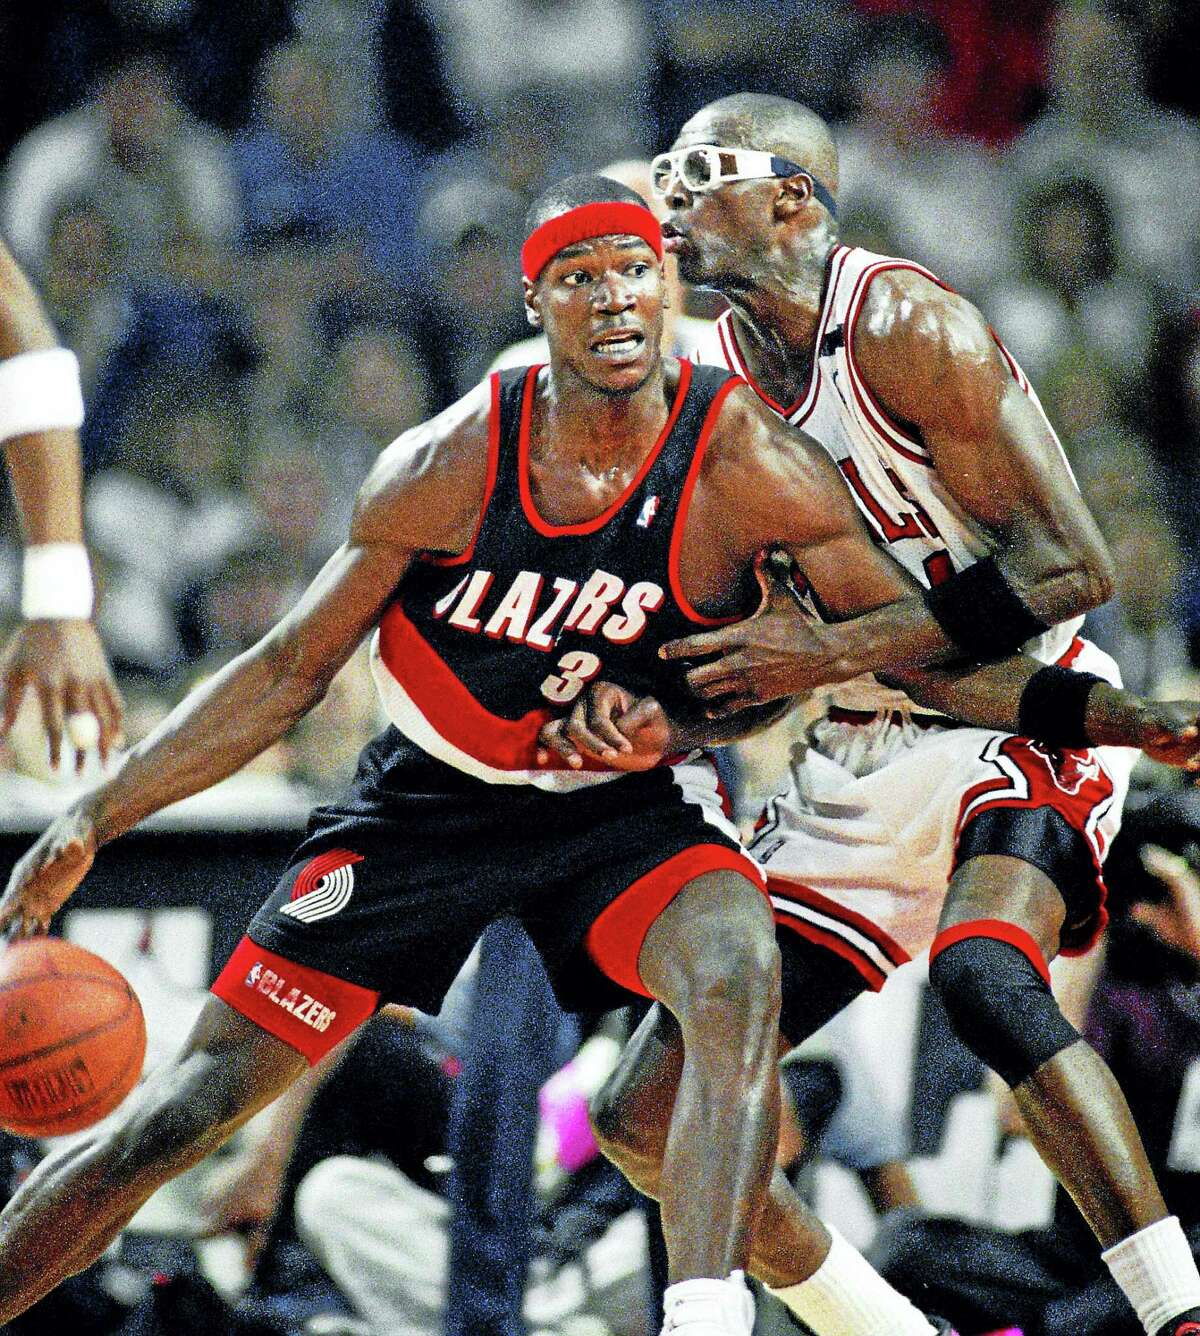 In this June 4, 1992 photo, Portland Trail Blazers' Cliff Robinson drives on Chicago Bulls' Horace Grant during Game 1 of the NBA Finals in Chicago.